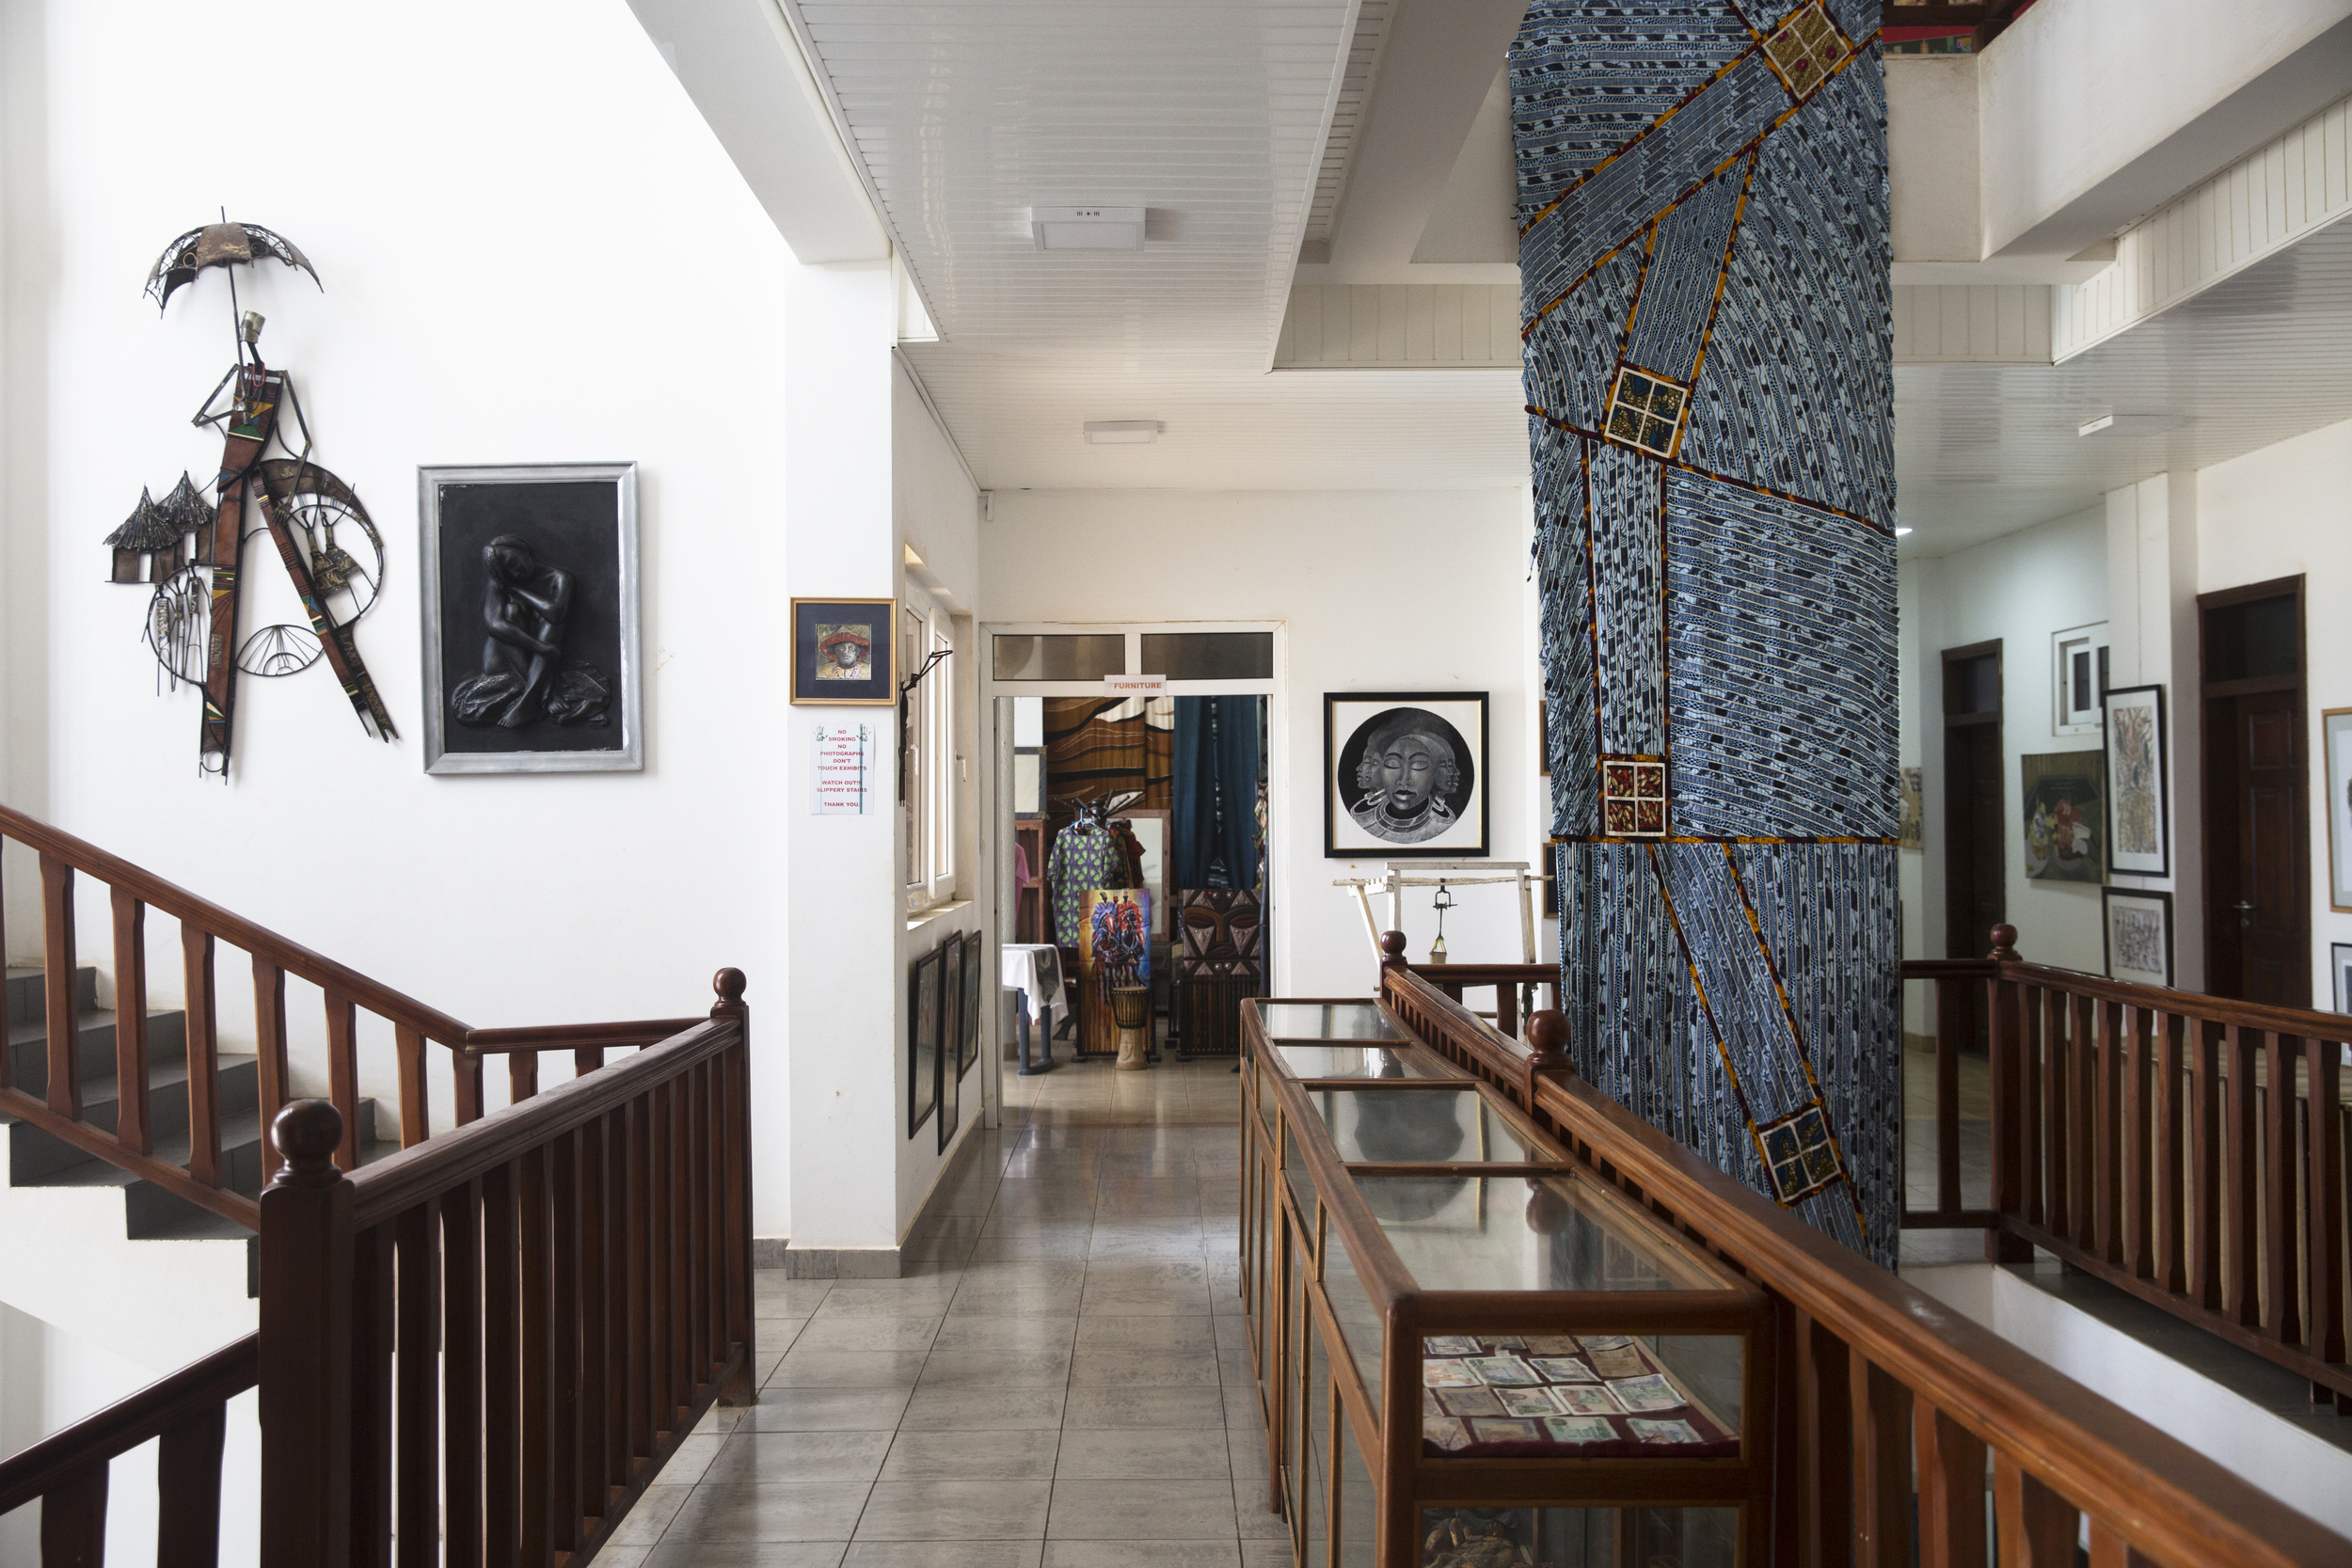 The second floor of the gallery.